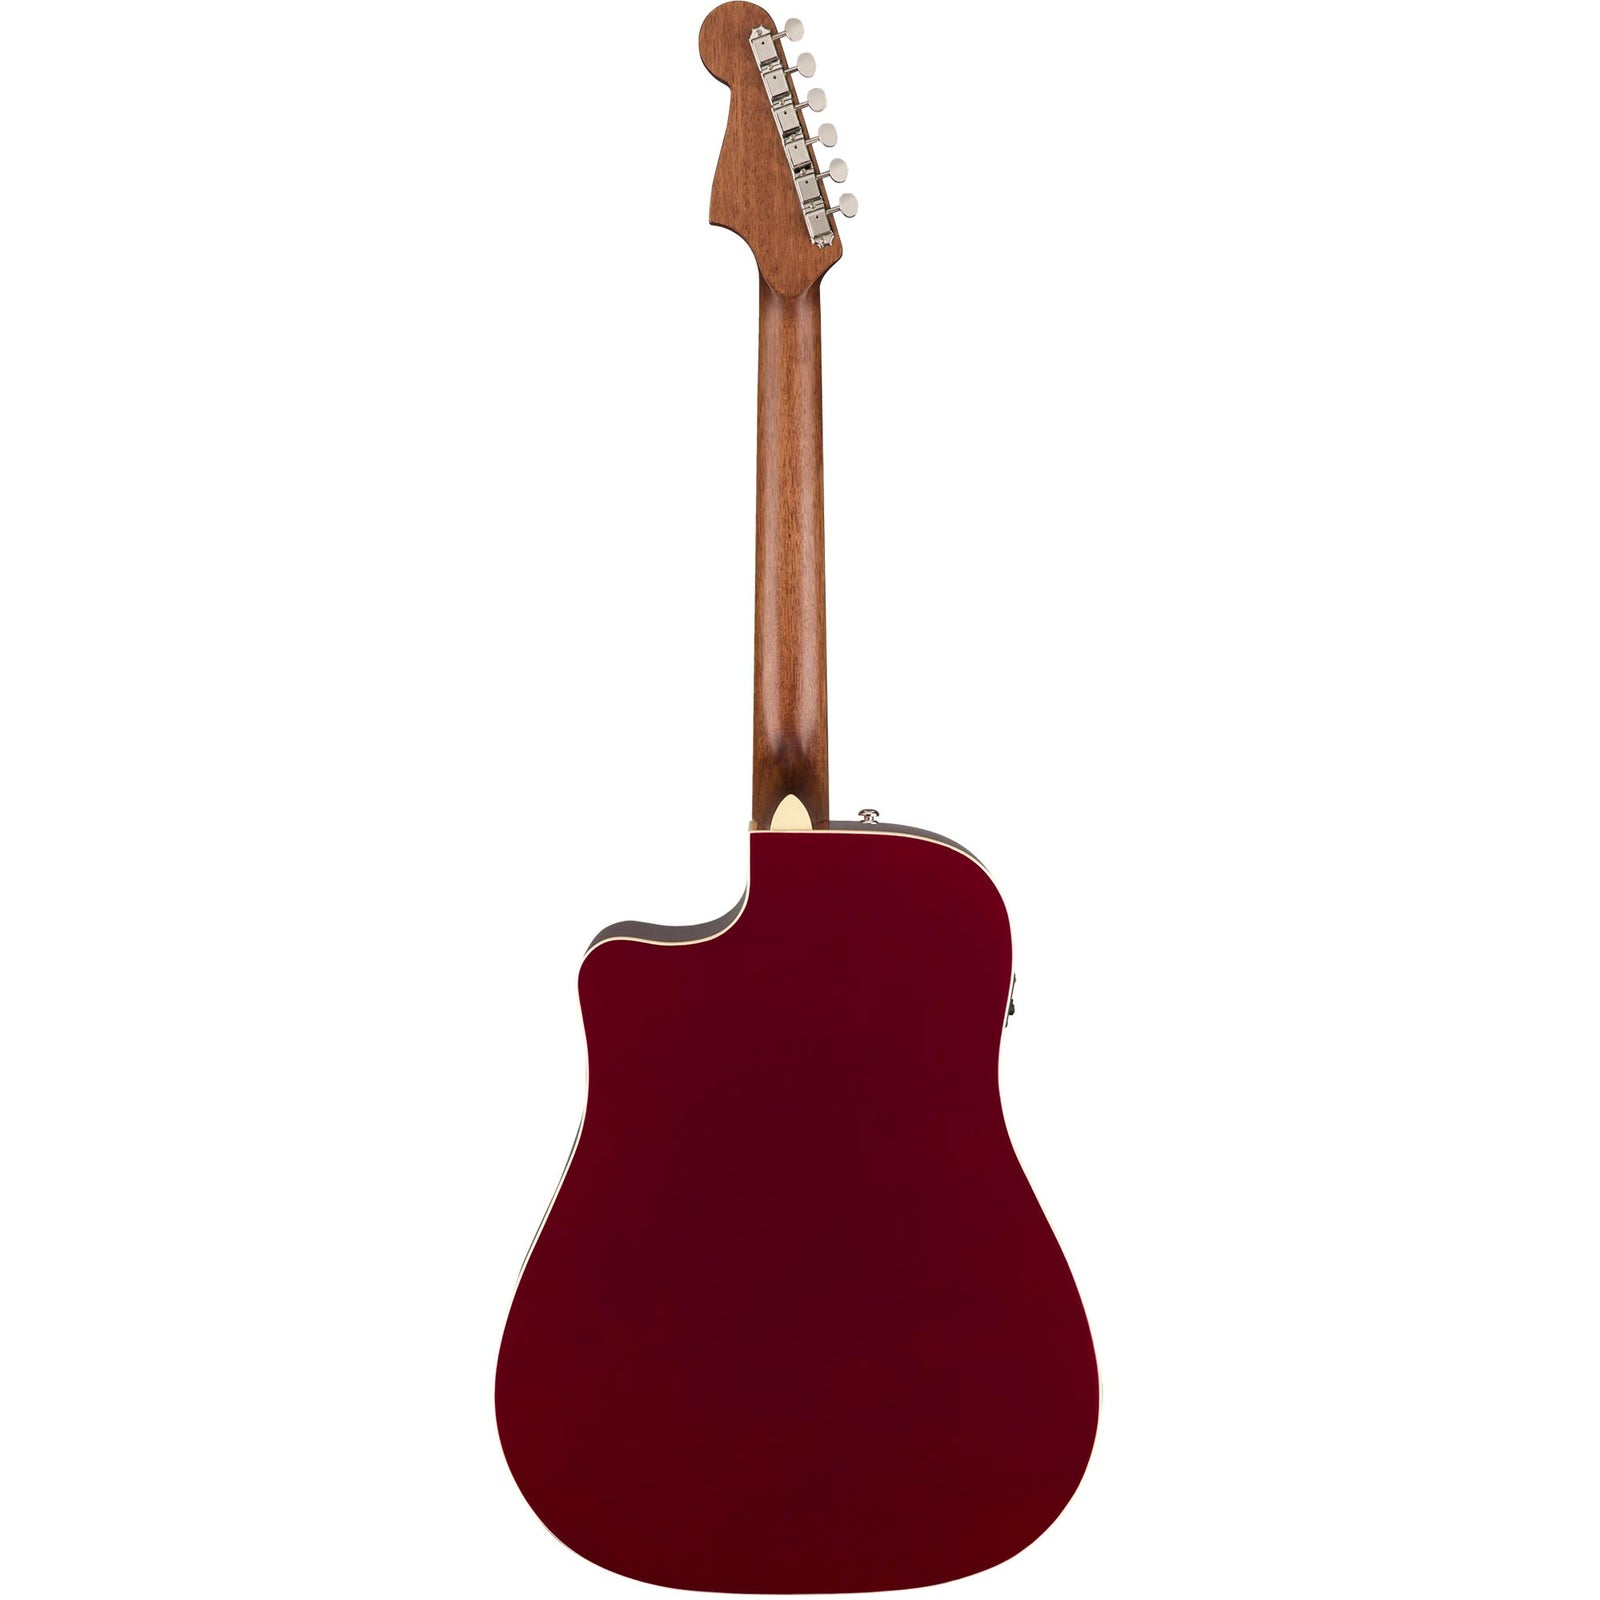 Fender Redondo Player - Candy Apple Red - Image: 4